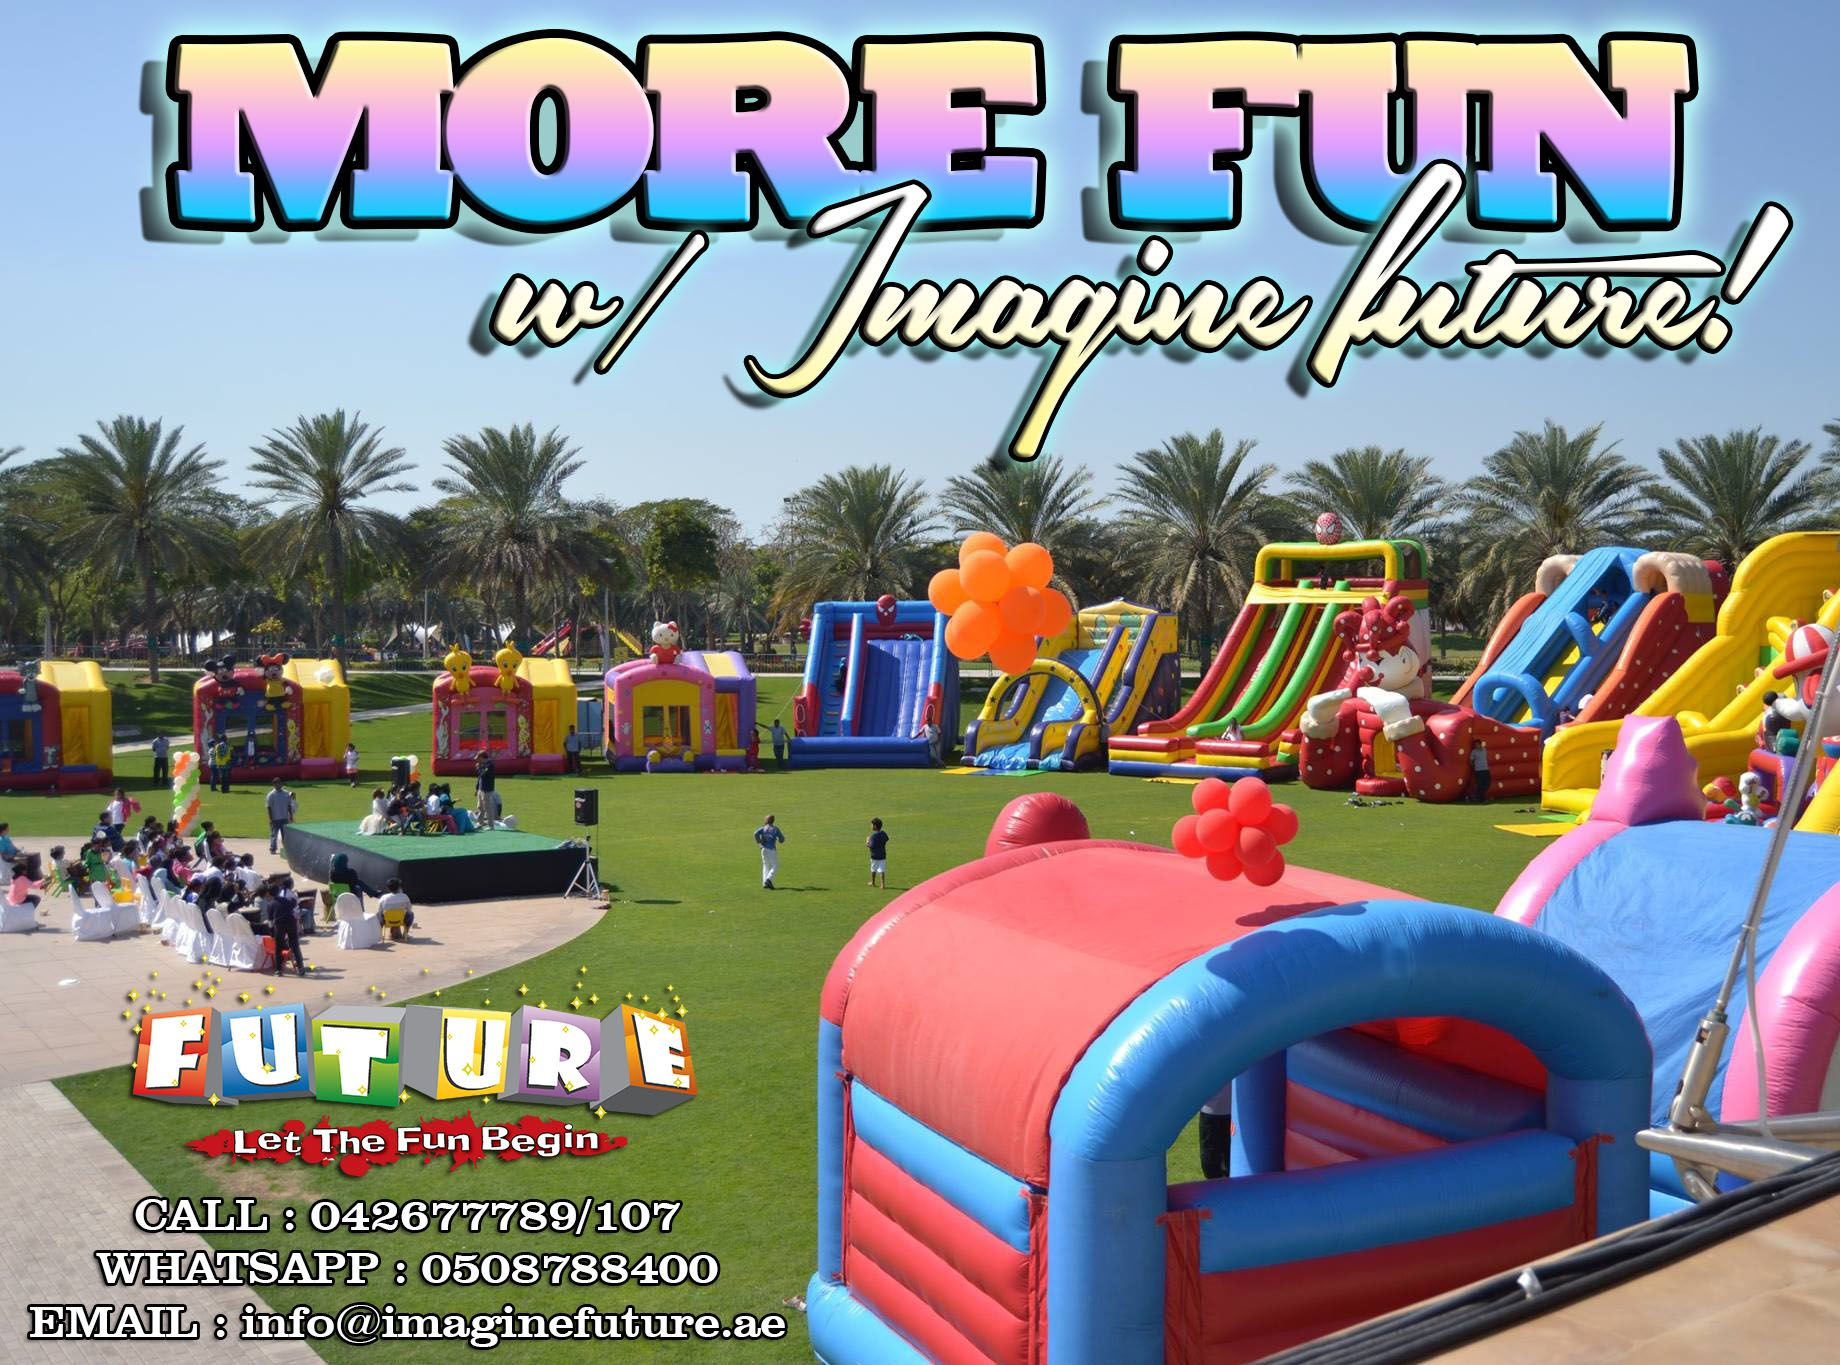 Let us give you the best entertainment and excitement on your events this coming Holidays! ✔️More choices of Small to Large Inflatables ✔️Thrill Mechanical Rides ✔️All out bouncing trampolines ✔️Delicious and friendly budget Food Van!  BOOK US NOW! Get discount upon early reservations.  Contact us for more information  Call : 042677789/107 Email : info@imaginefuture.ae Whatsapp : 0508788400  #mydubai #dubaievents #dubaiparty #uaeevents #schools #inflatables #moms #holidays #eidAlAdha…